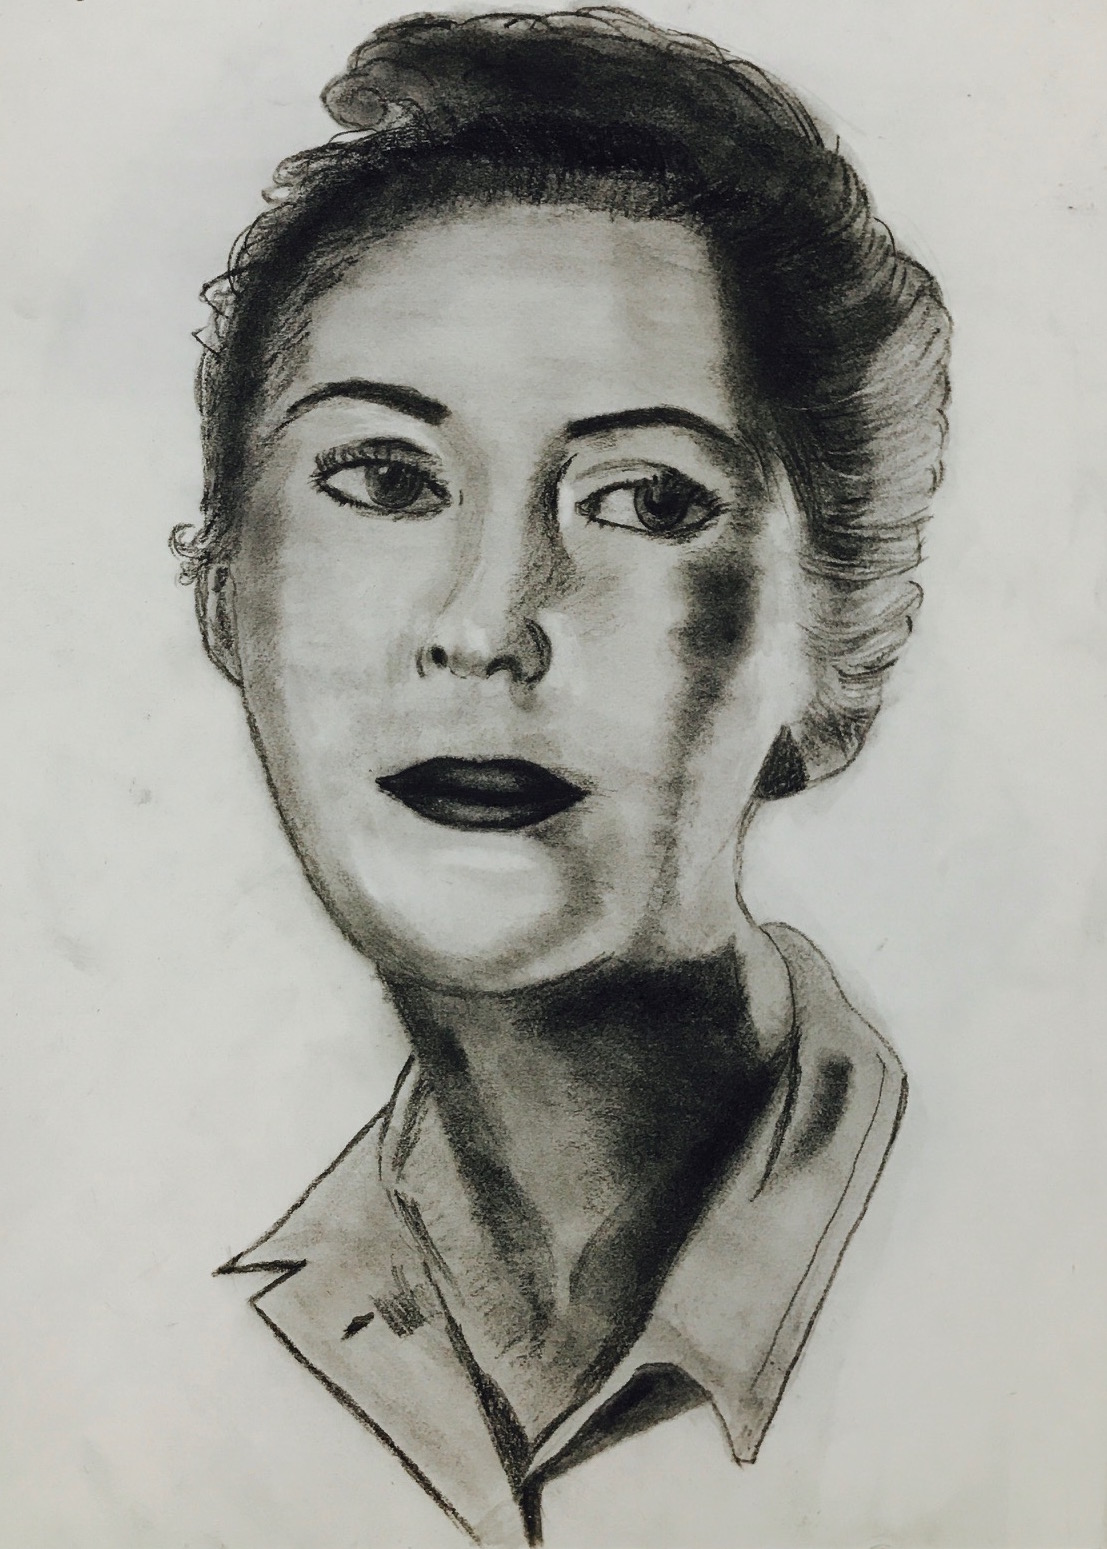 A WOMAN Charcoal Sketch art Pencil, art, charcoal, handmade, lady